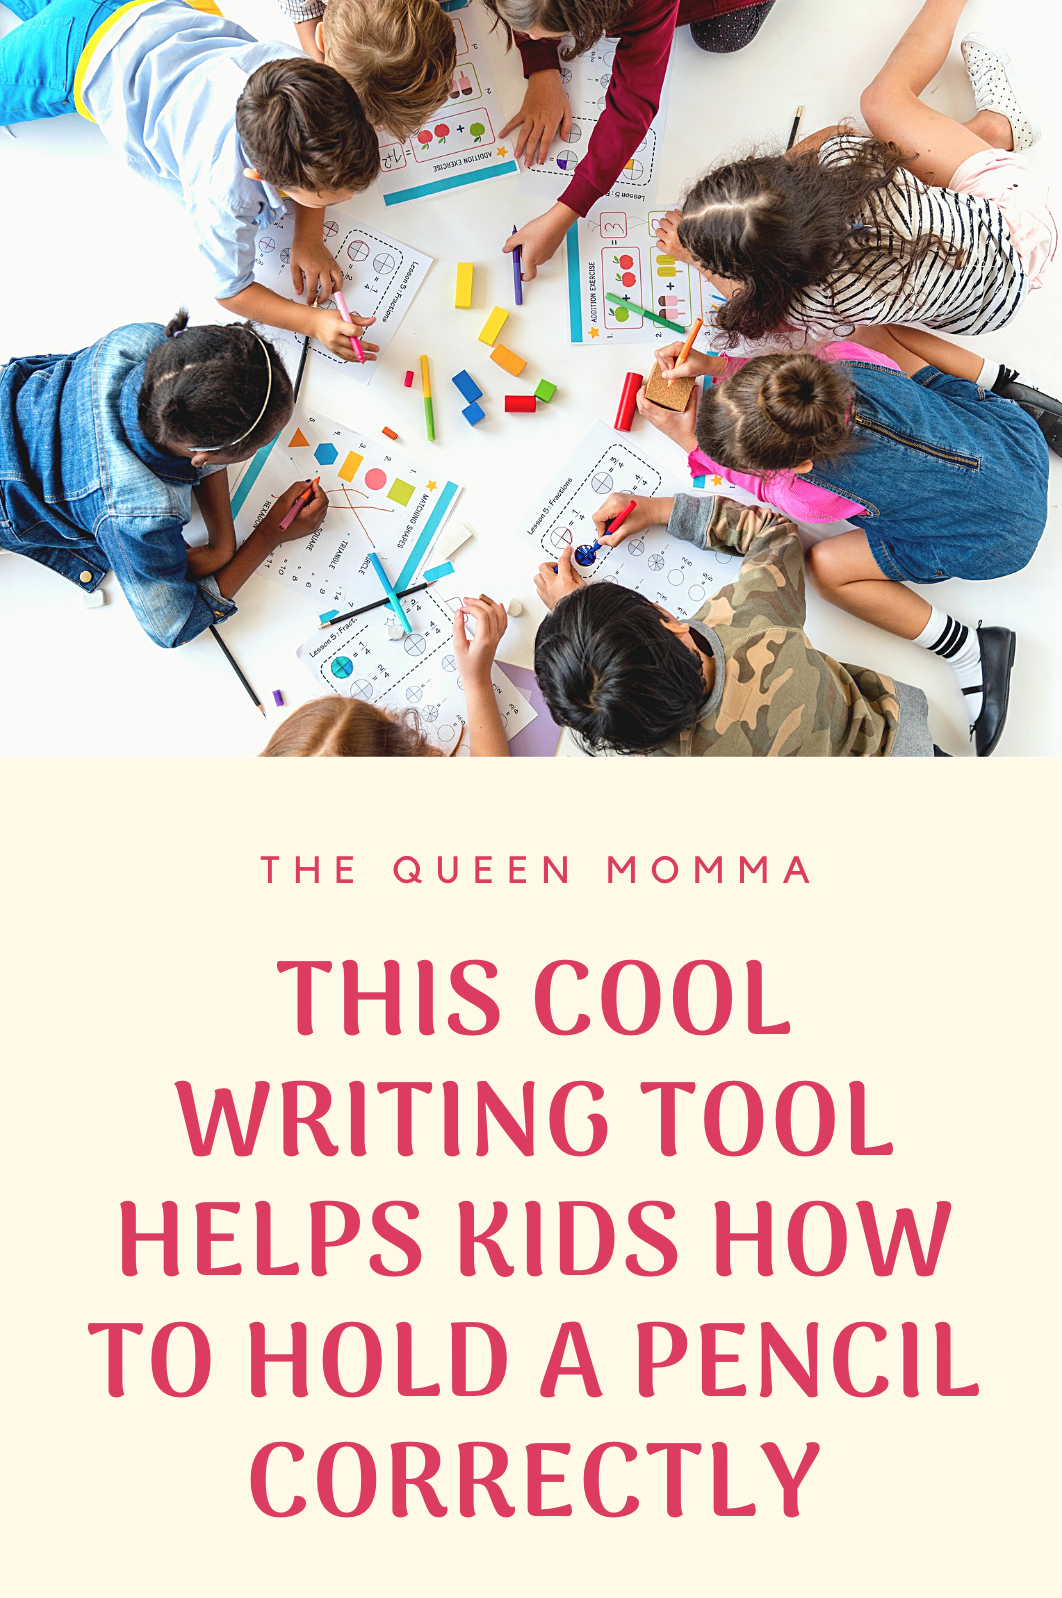 This Cool Writing Tool Helps Kids How To Hold A Pencil